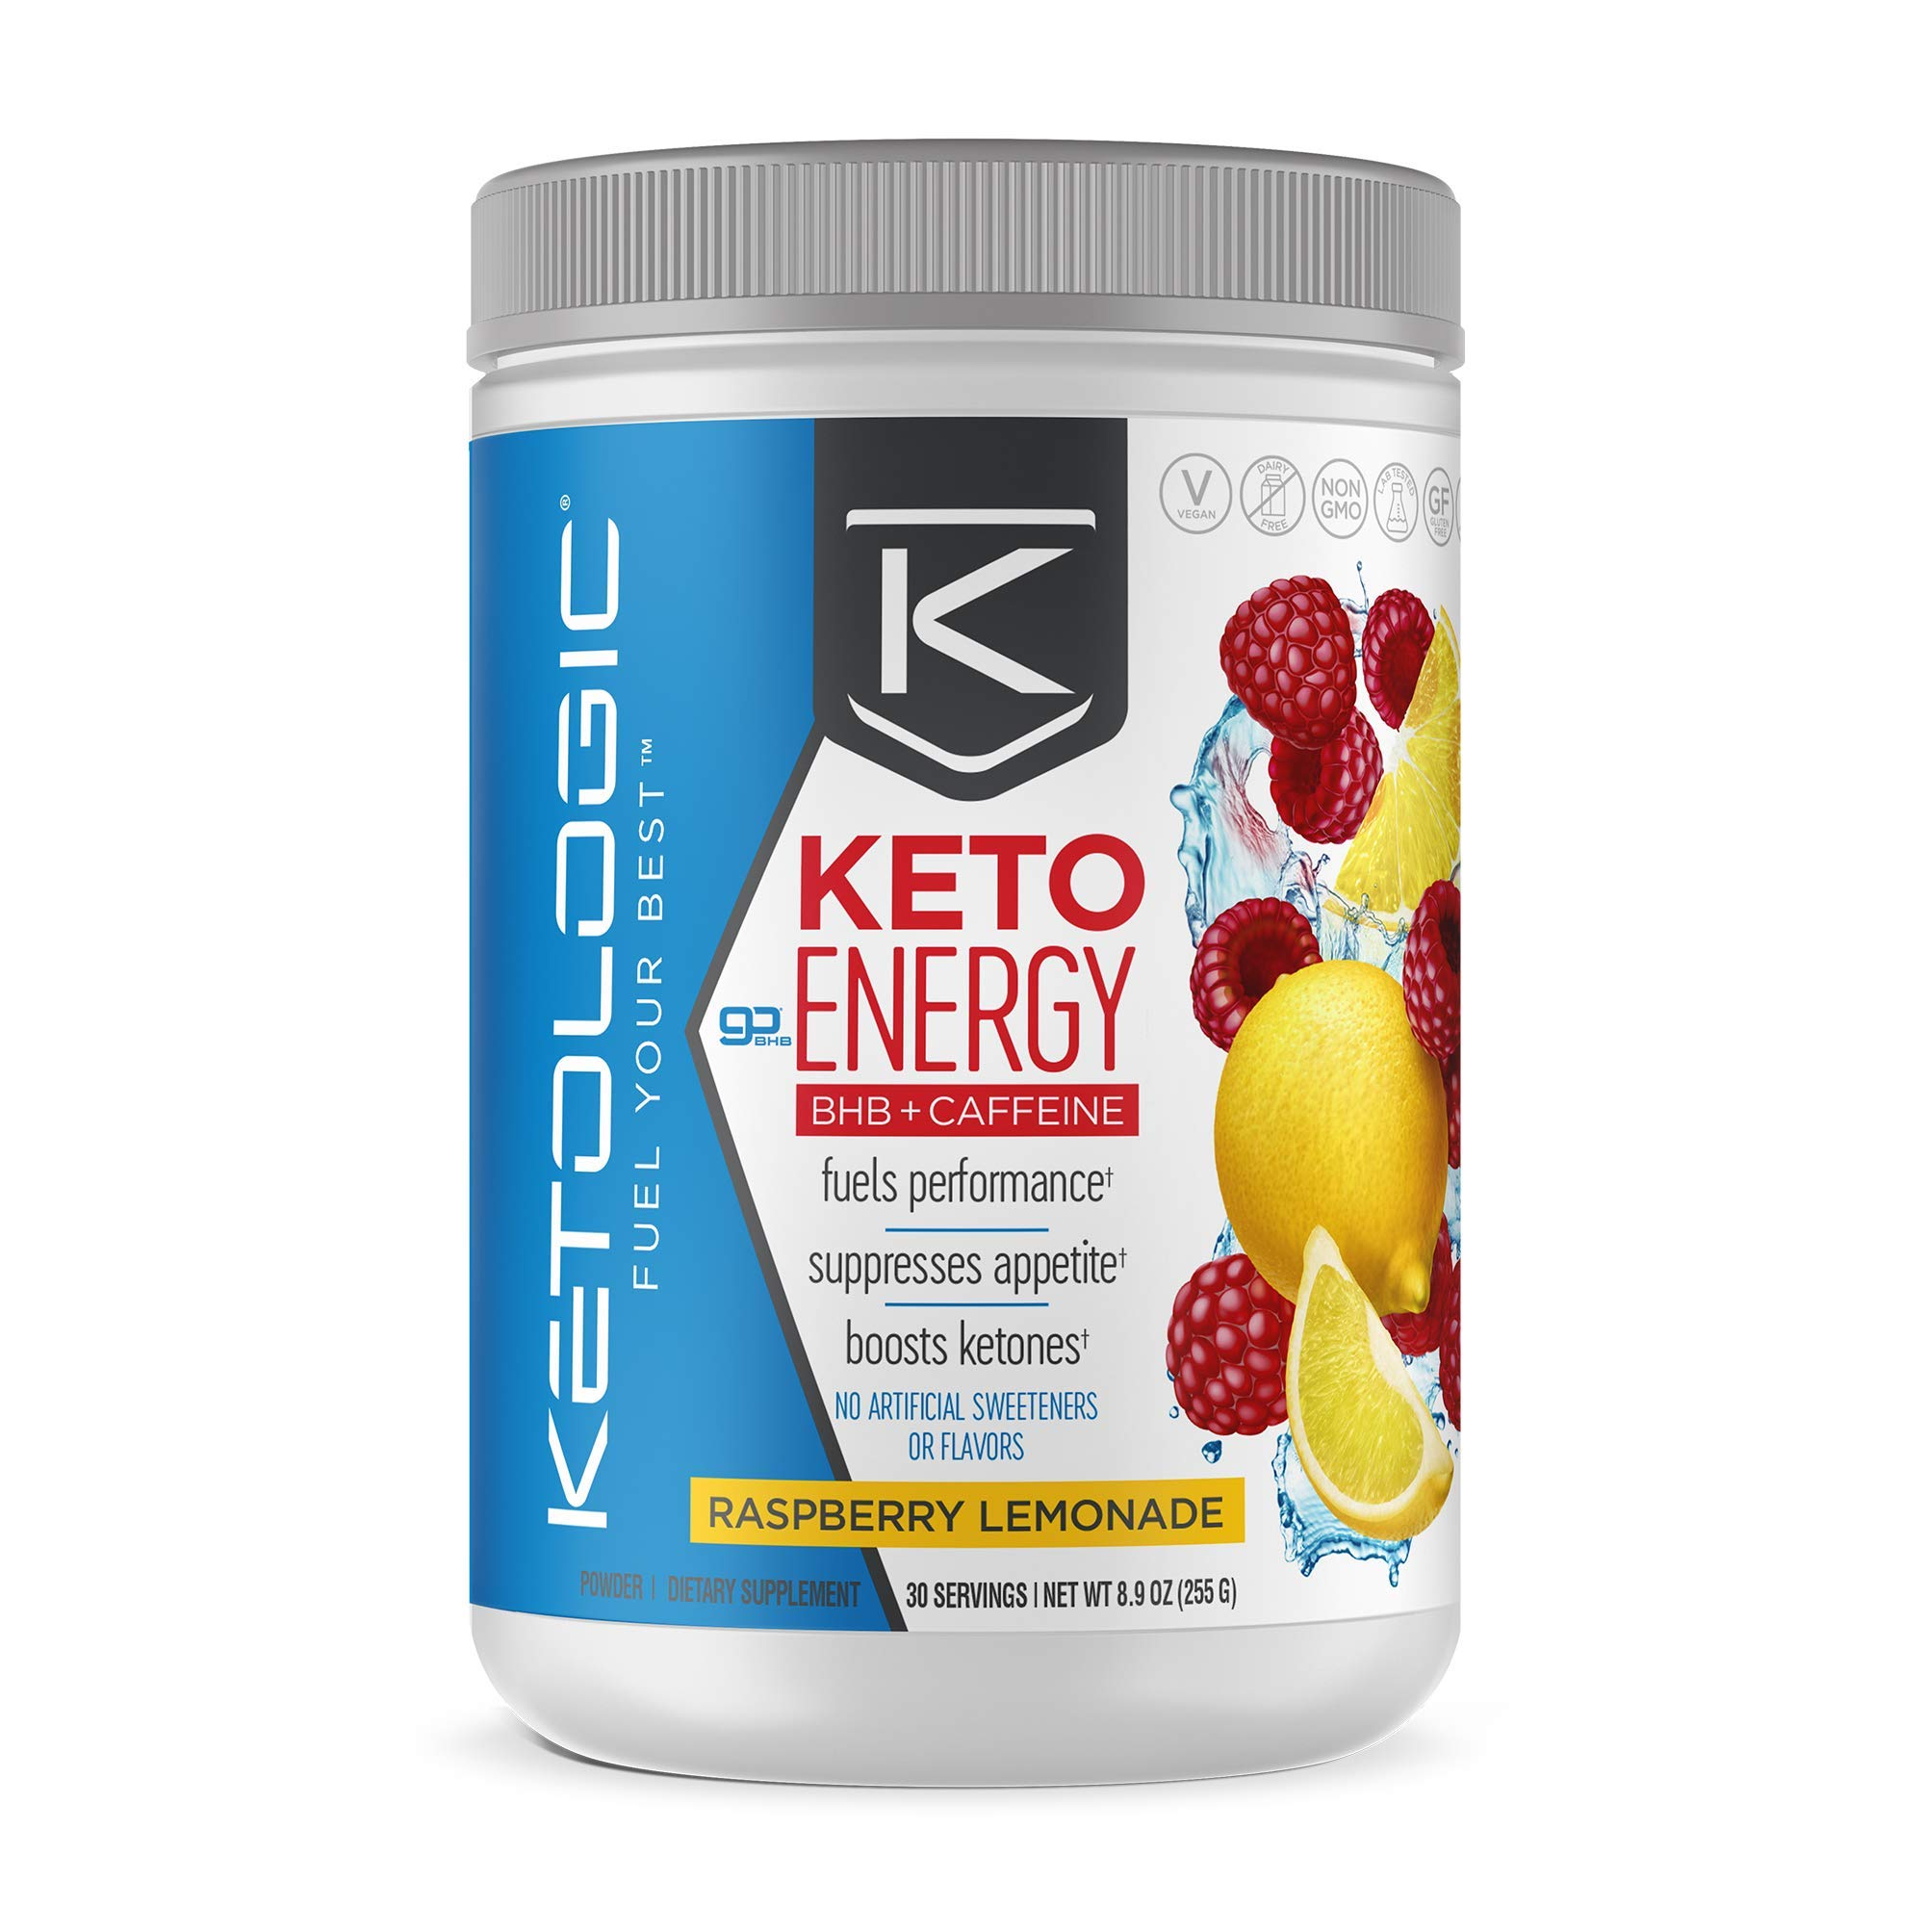 KetoLogic KetoEnergy BHB with Caffeine, Raspberry Lemonade | Beta-Hydrobutyrate Salts Ketone Powder Supplement | Supports Low-Carb, Keto Diet & Pre-Workout | 30 Servings